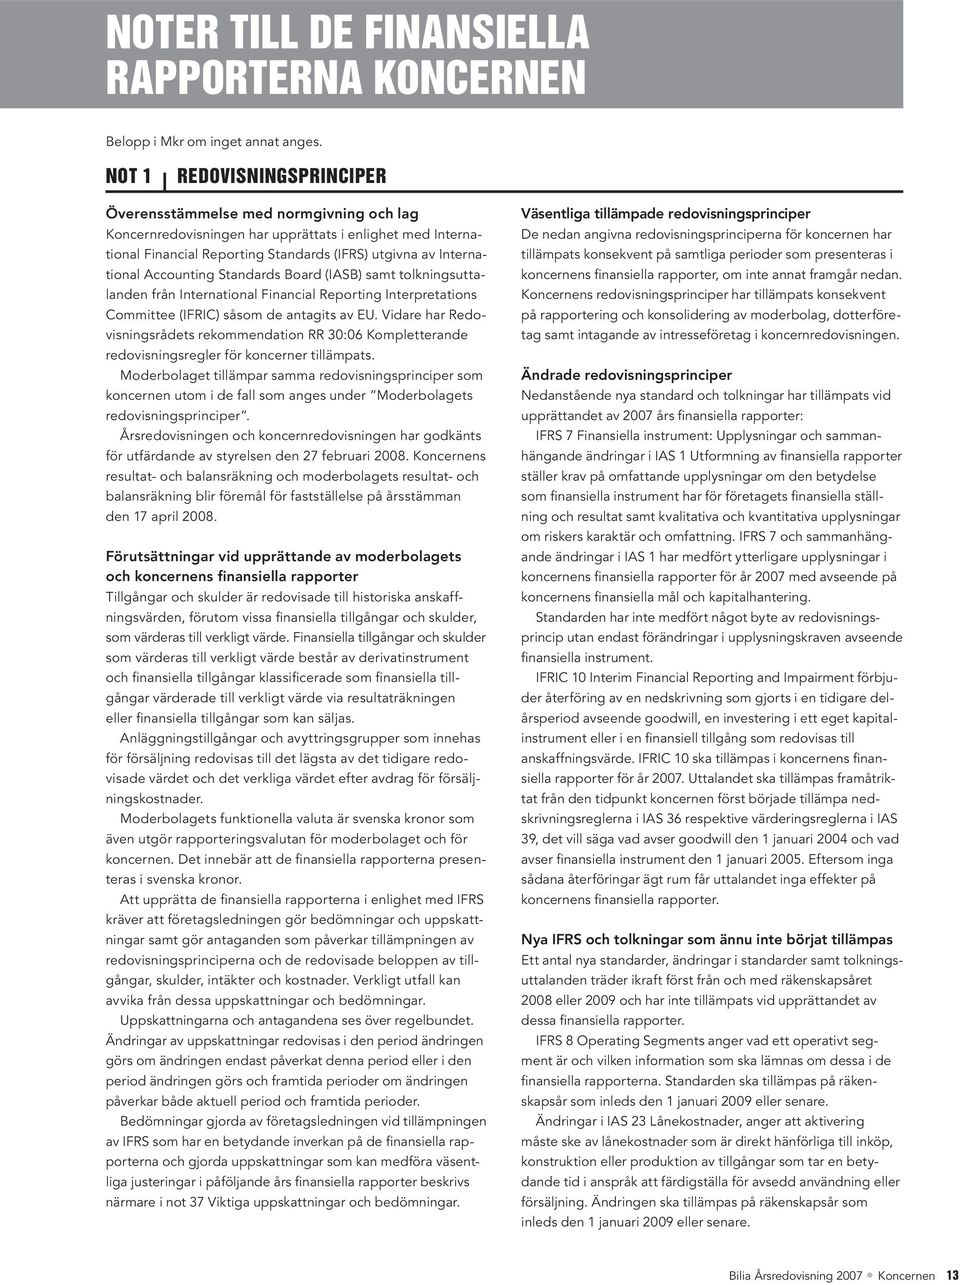 Accounting Standards Board (IASB) samt tolkningsuttalanden från International Financial Reporting Interpretations Committee (IFRIC) såsom de antagits av EU.